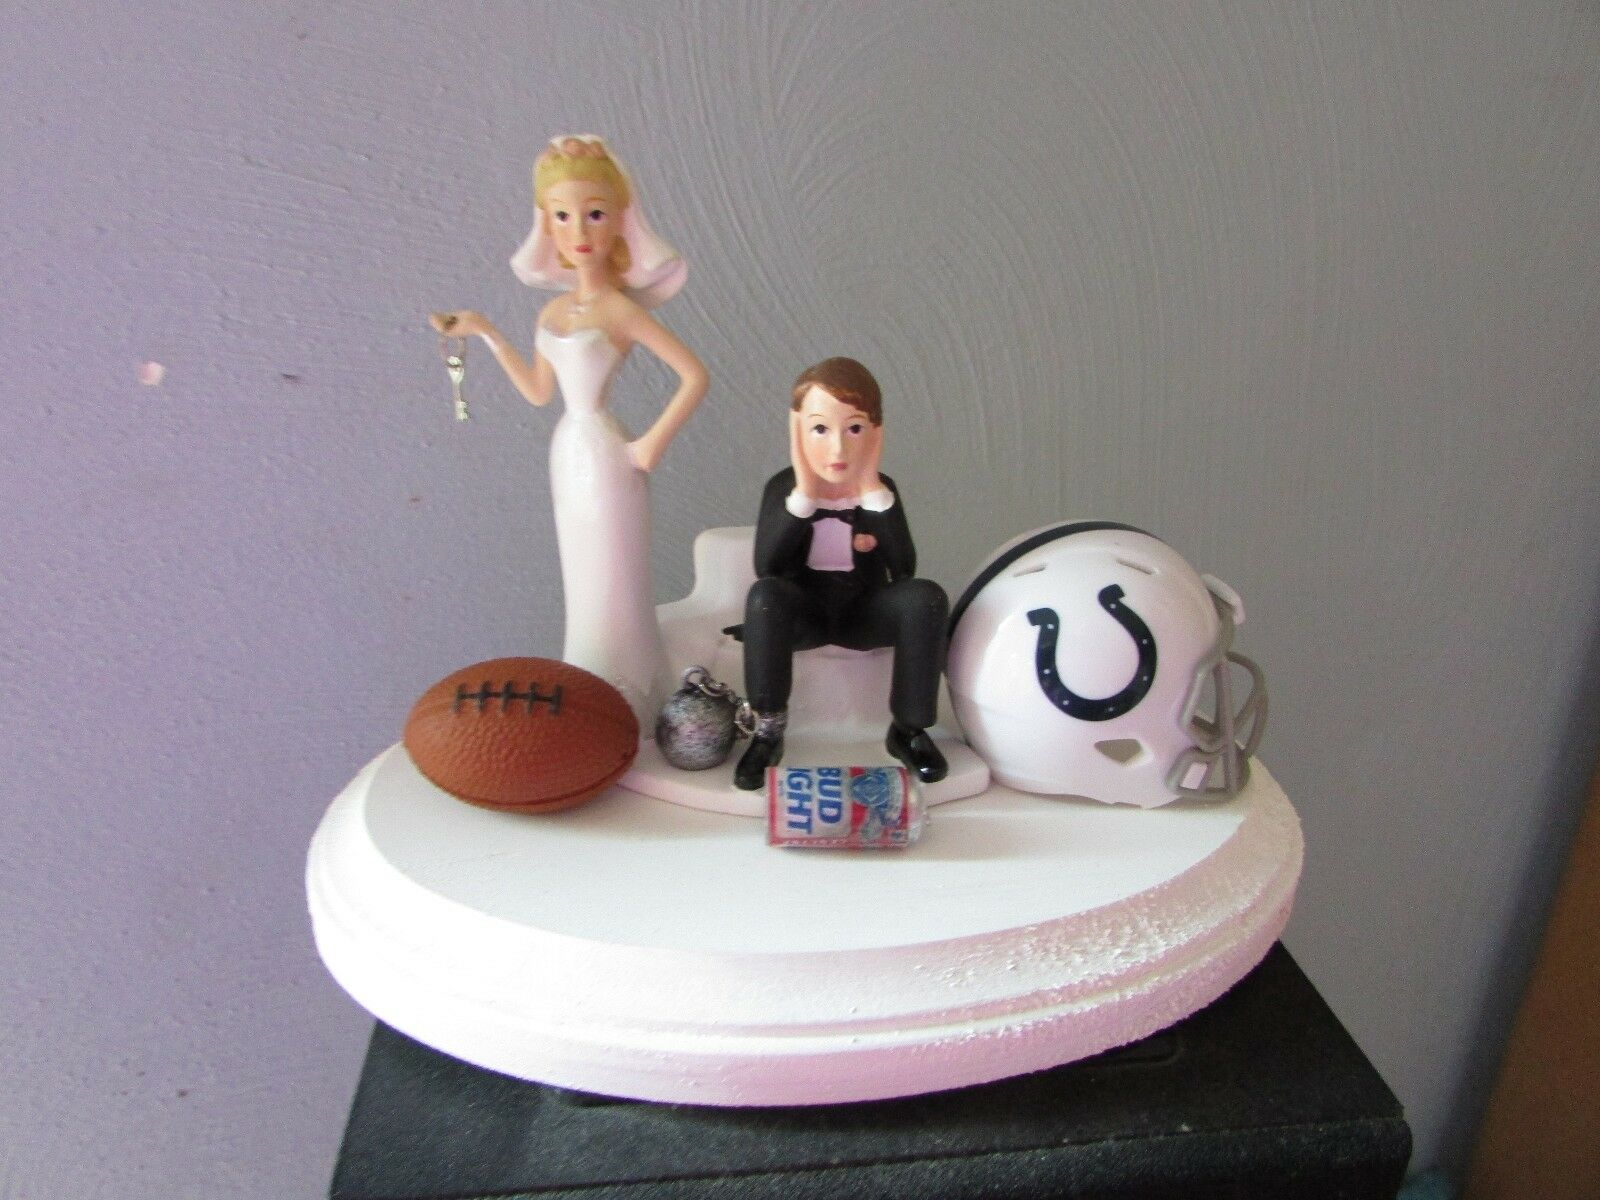 Indianapolis Colts Cake Topper Bride Groom Wedding day Funny Football Theme